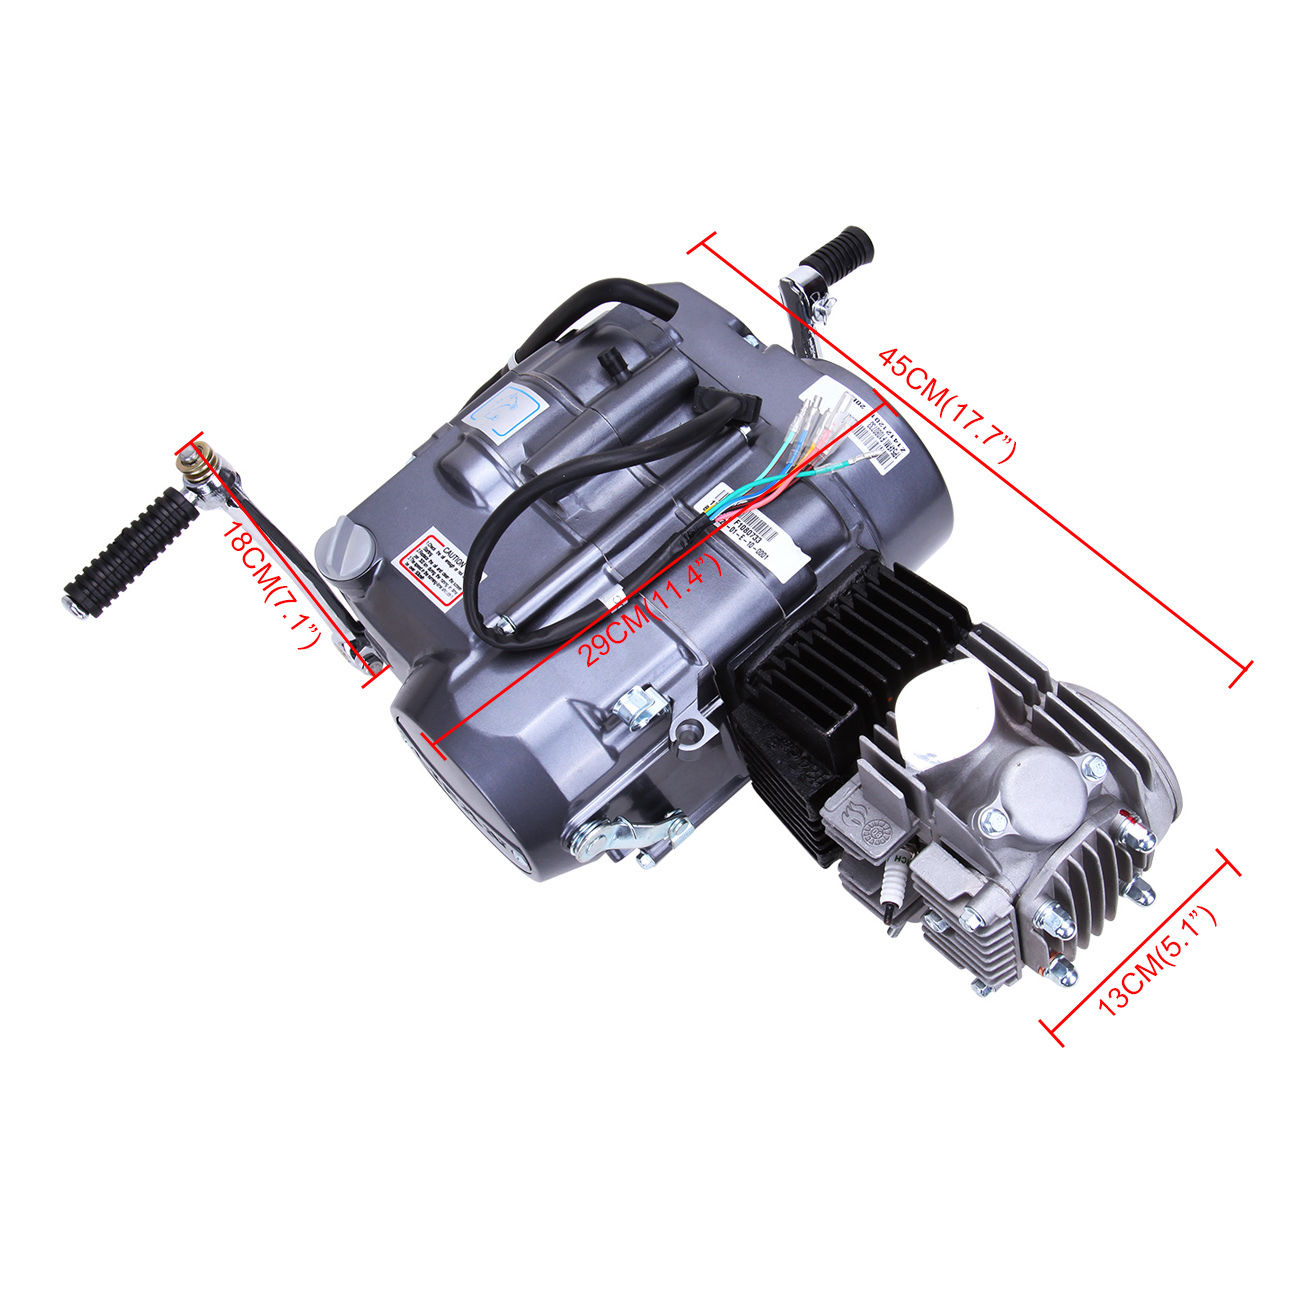 цена на 125CC CDI Dirt Bike Engine Motor Carb 124cm3 For Honda XR50 CRF50 XR CRF 50 70